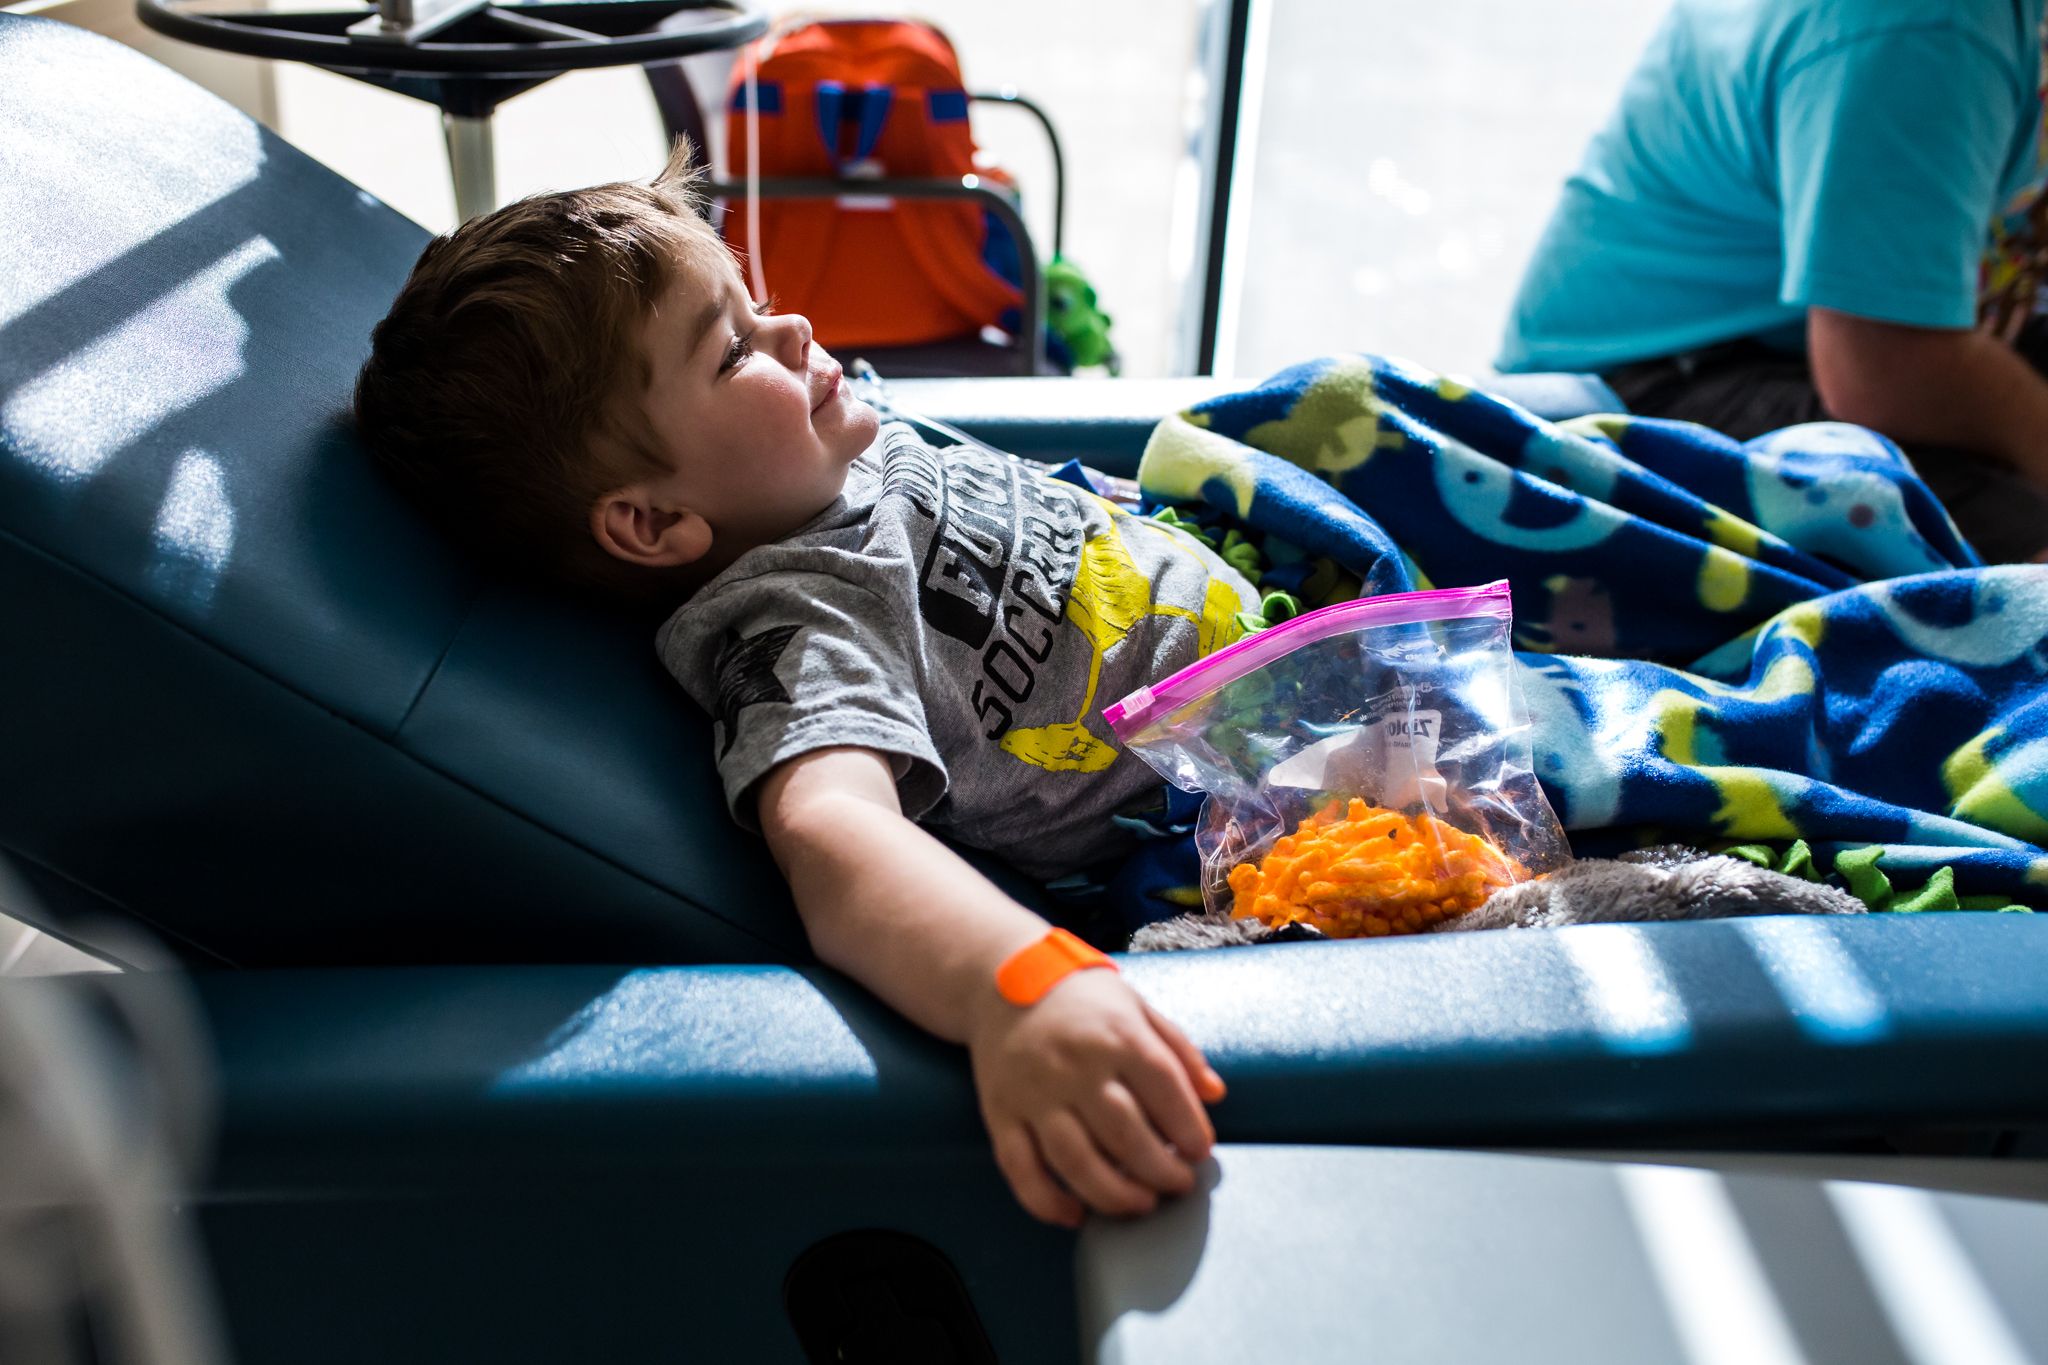 boy eating cheetos while getting an infusion